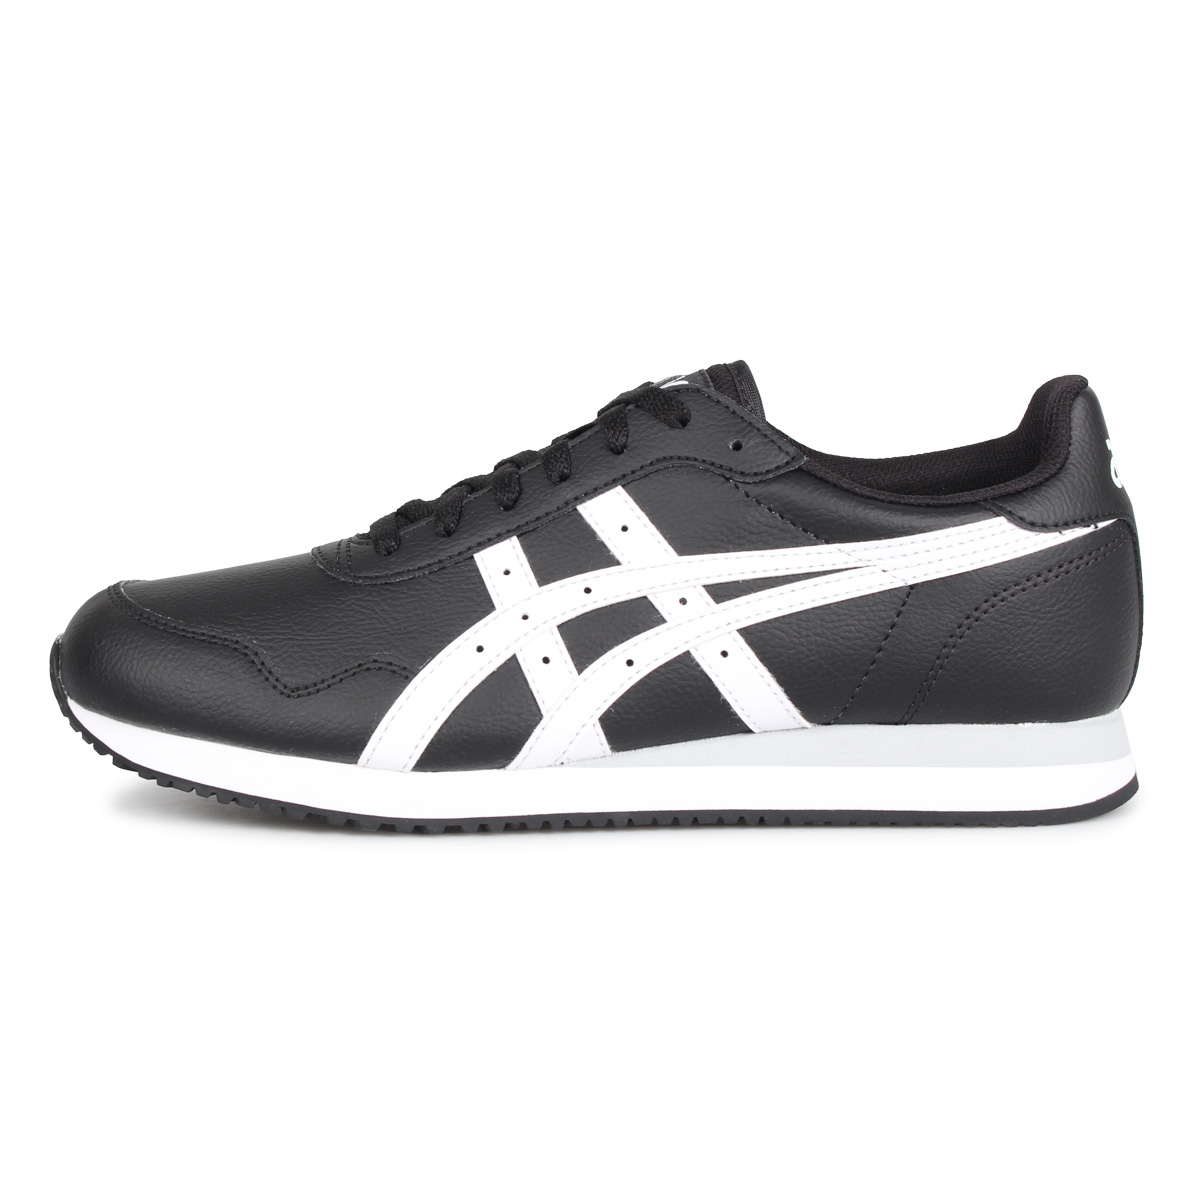 asics Tiger TIGER RUNNER ASICS tiger tiger runner sneakers men black black 1191A301 001 [1224 Shinnyu load]